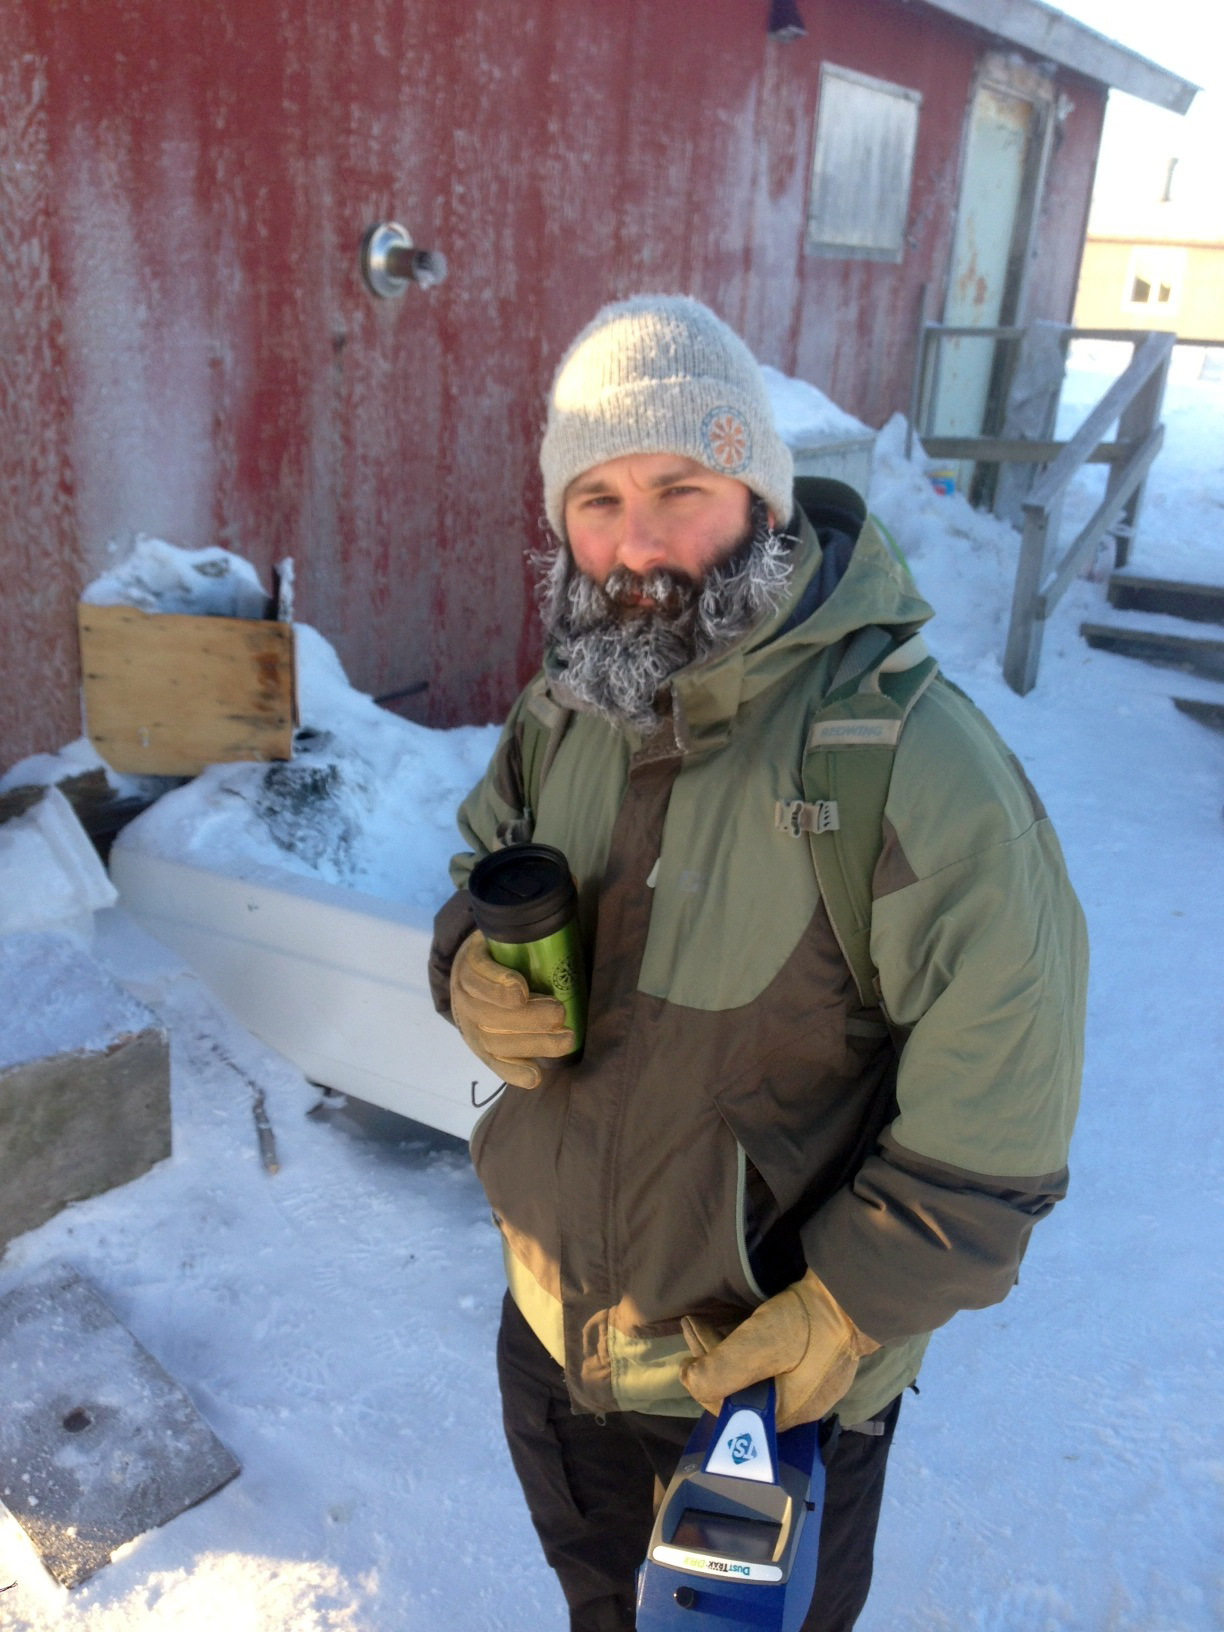 AJ Salkoski holds an air monitor outside a home in southwest Alaska during the winter of 2013. Salkoski is a Senior Program Manager at Alaska Native Tribal Health Consortium. He led a team to eight villages in southwest Alaska to conduct air quality tests and home improvements. (Courtesy AJ Salkoski / ANTHC)